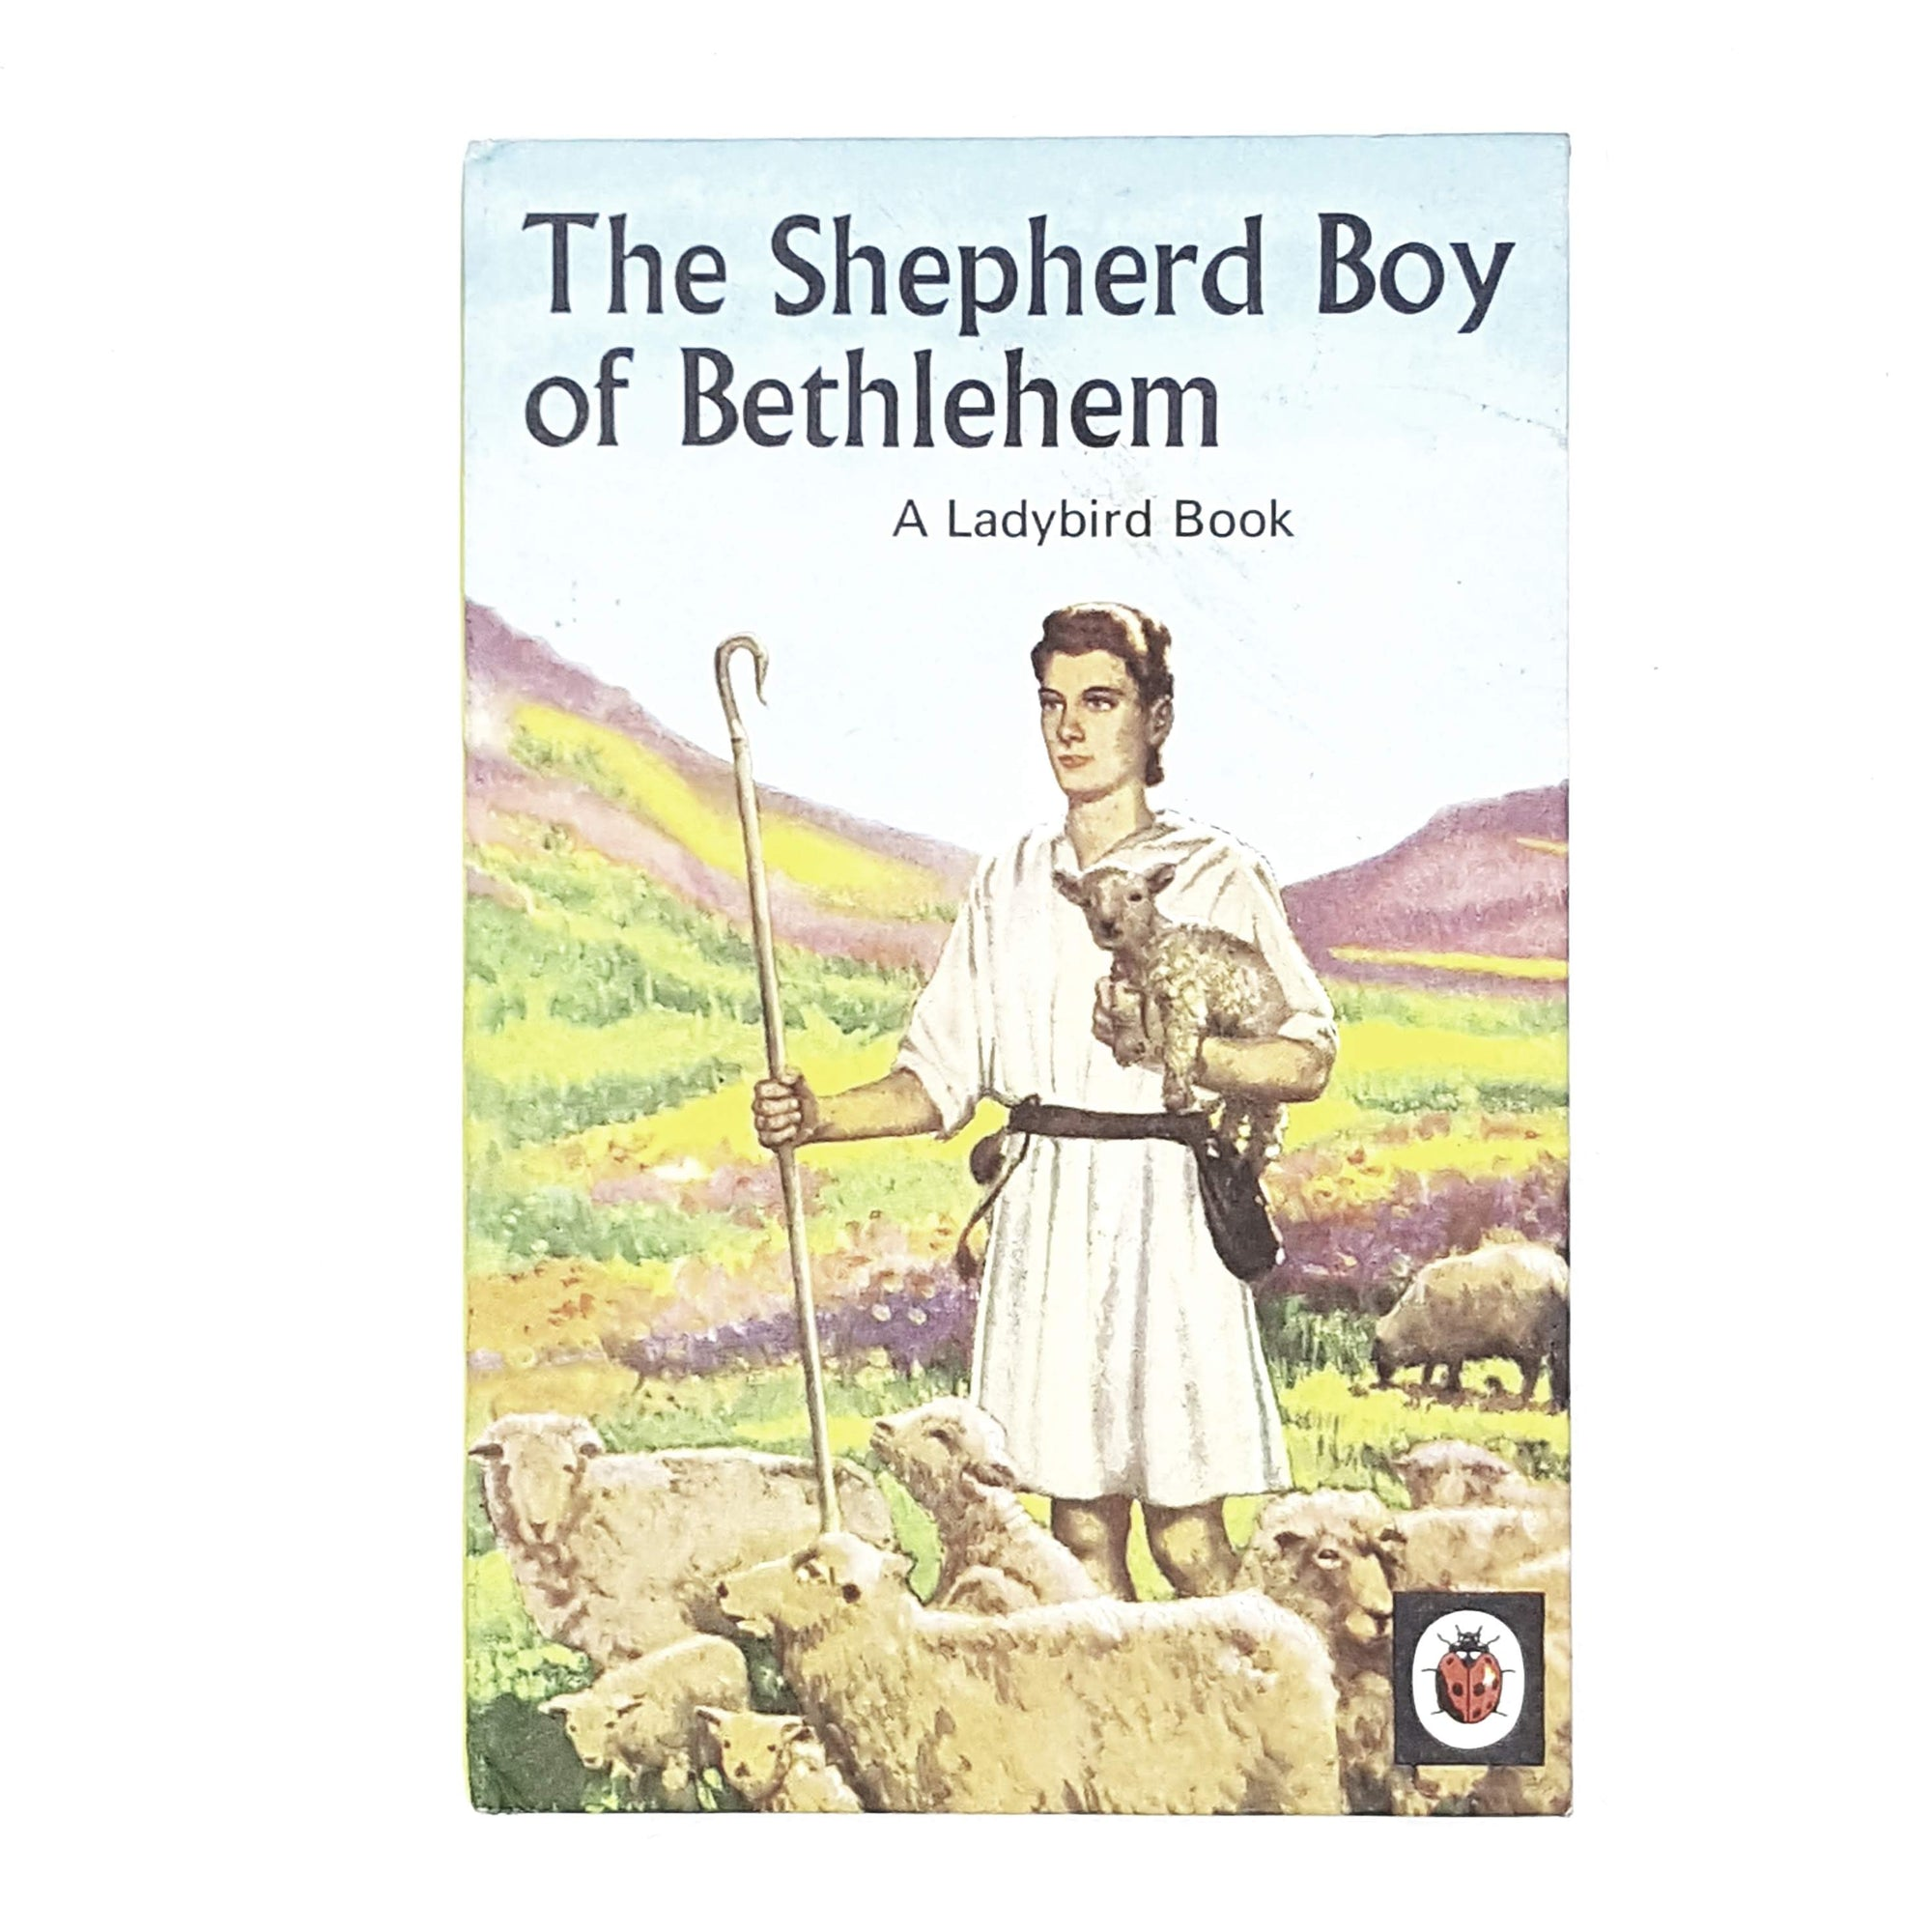 The Shepherd Boy of Bethlehem by Lucy Diamond 1953